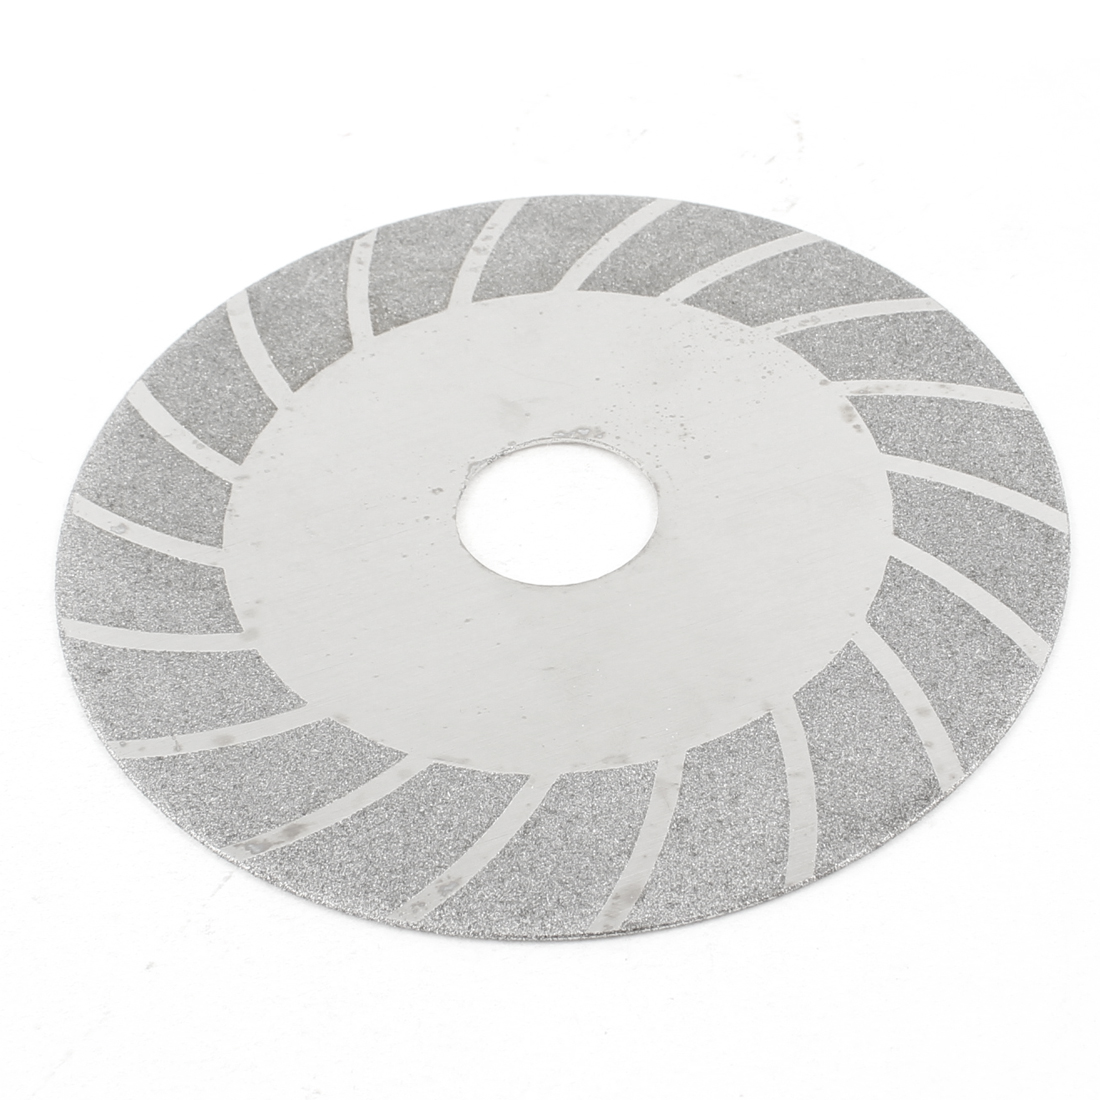 "3.9"" Outside Dia Double Side Glass Diamond Saw Slice Cutting Wheel Disc"